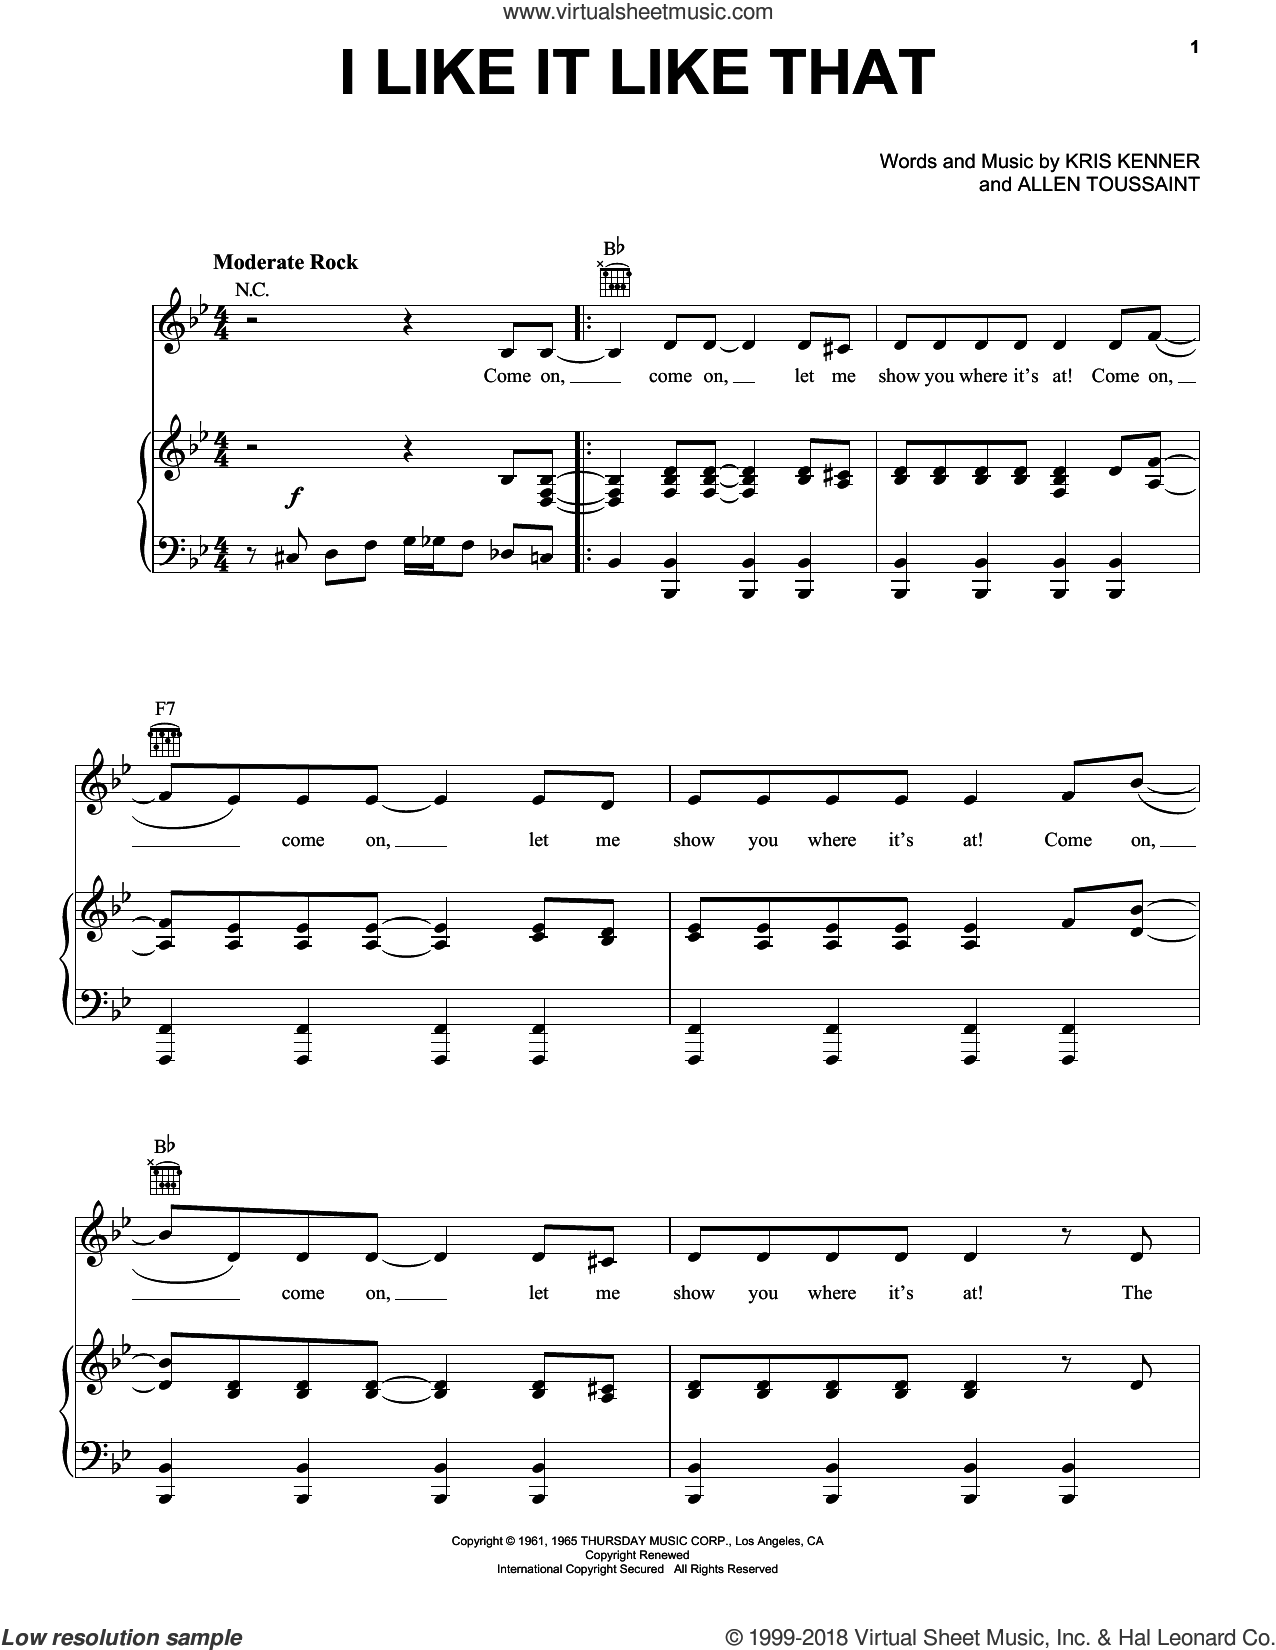 I Like It Like That sheet music for voice, piano or guitar by Dave Clark Five, intermediate skill level